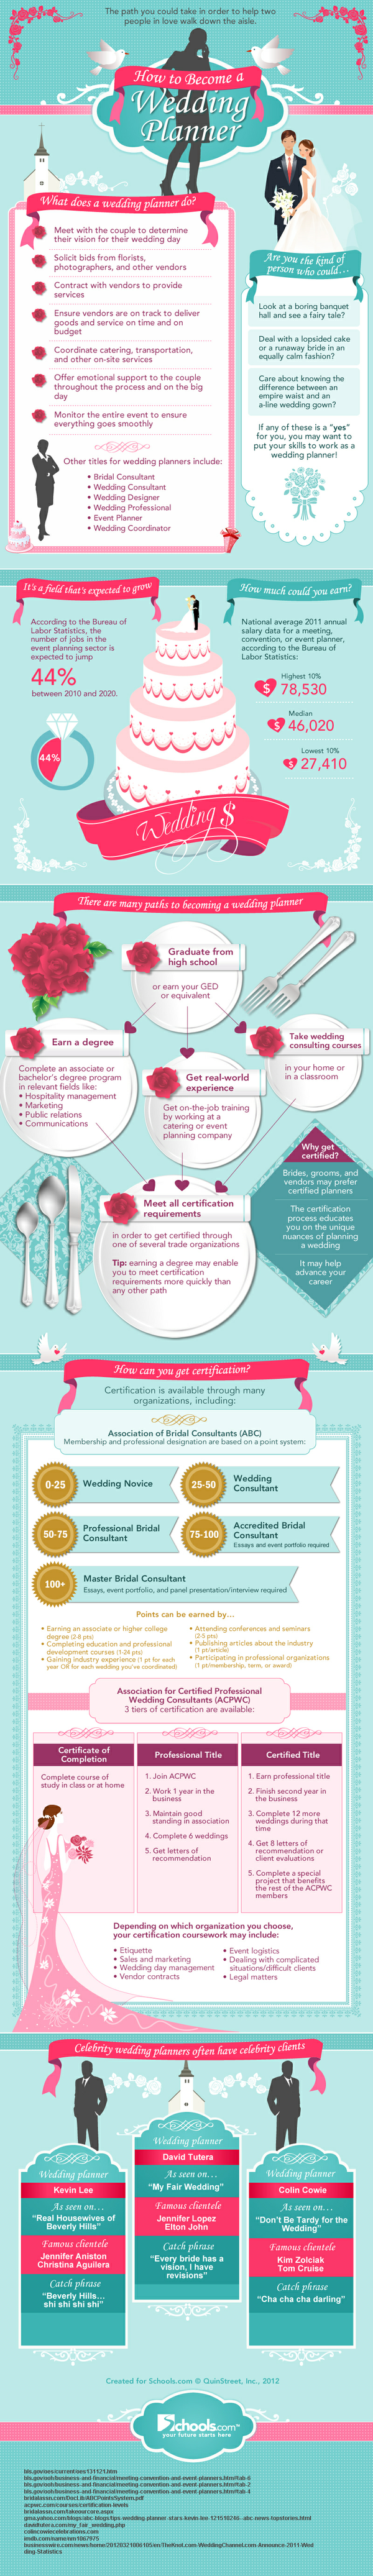 how to become a wedding planner infographic On how to become wedding planner